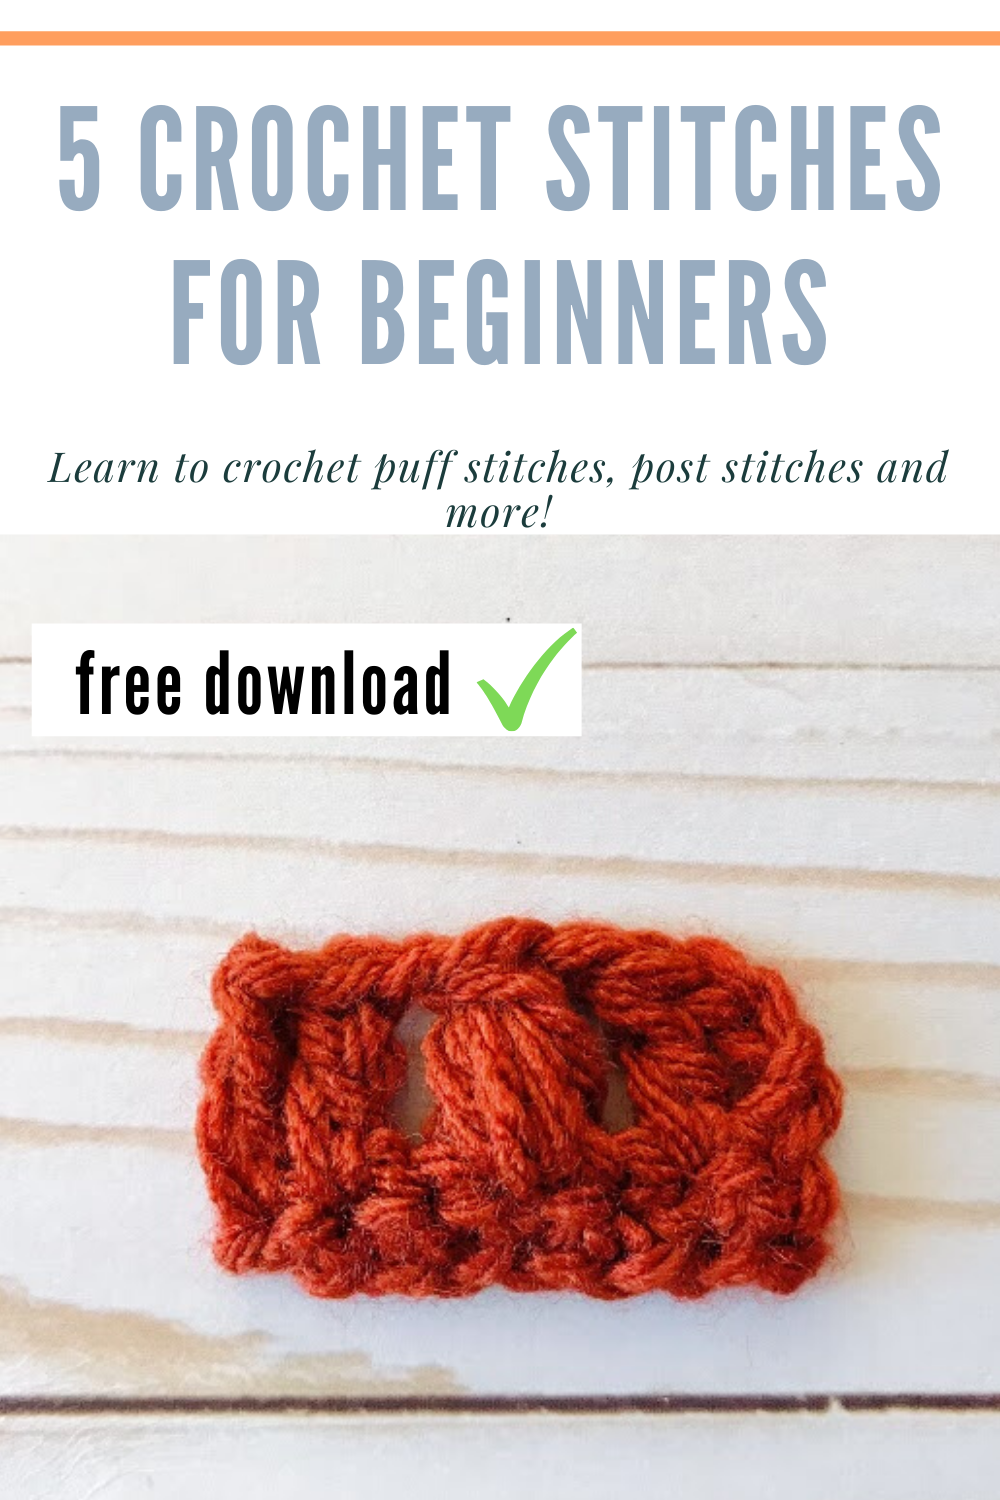 5 Crochet Stitches For Beginners In 2020 Crochet Stitches For Beginners Crochet Stitches Free Crochet Stitches